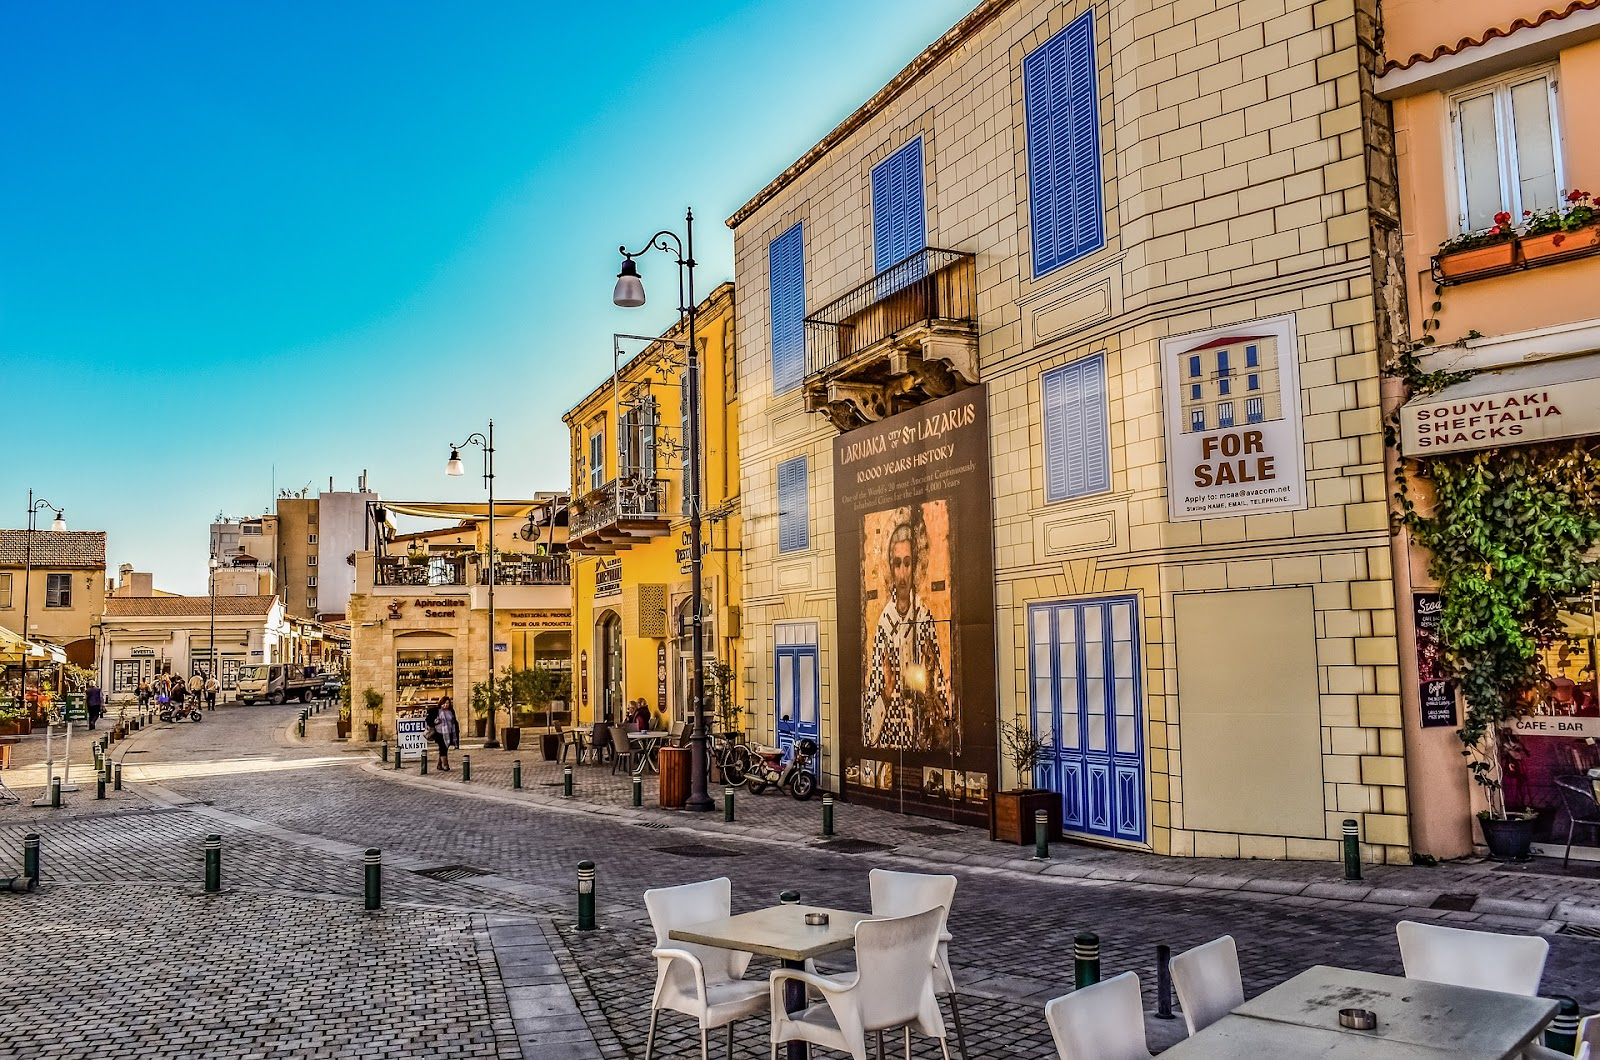 larnaca cyprus, small square and cobblestone roads. Whitewashed buildings, traditional architecture, empty tables. sunny day in cyprus